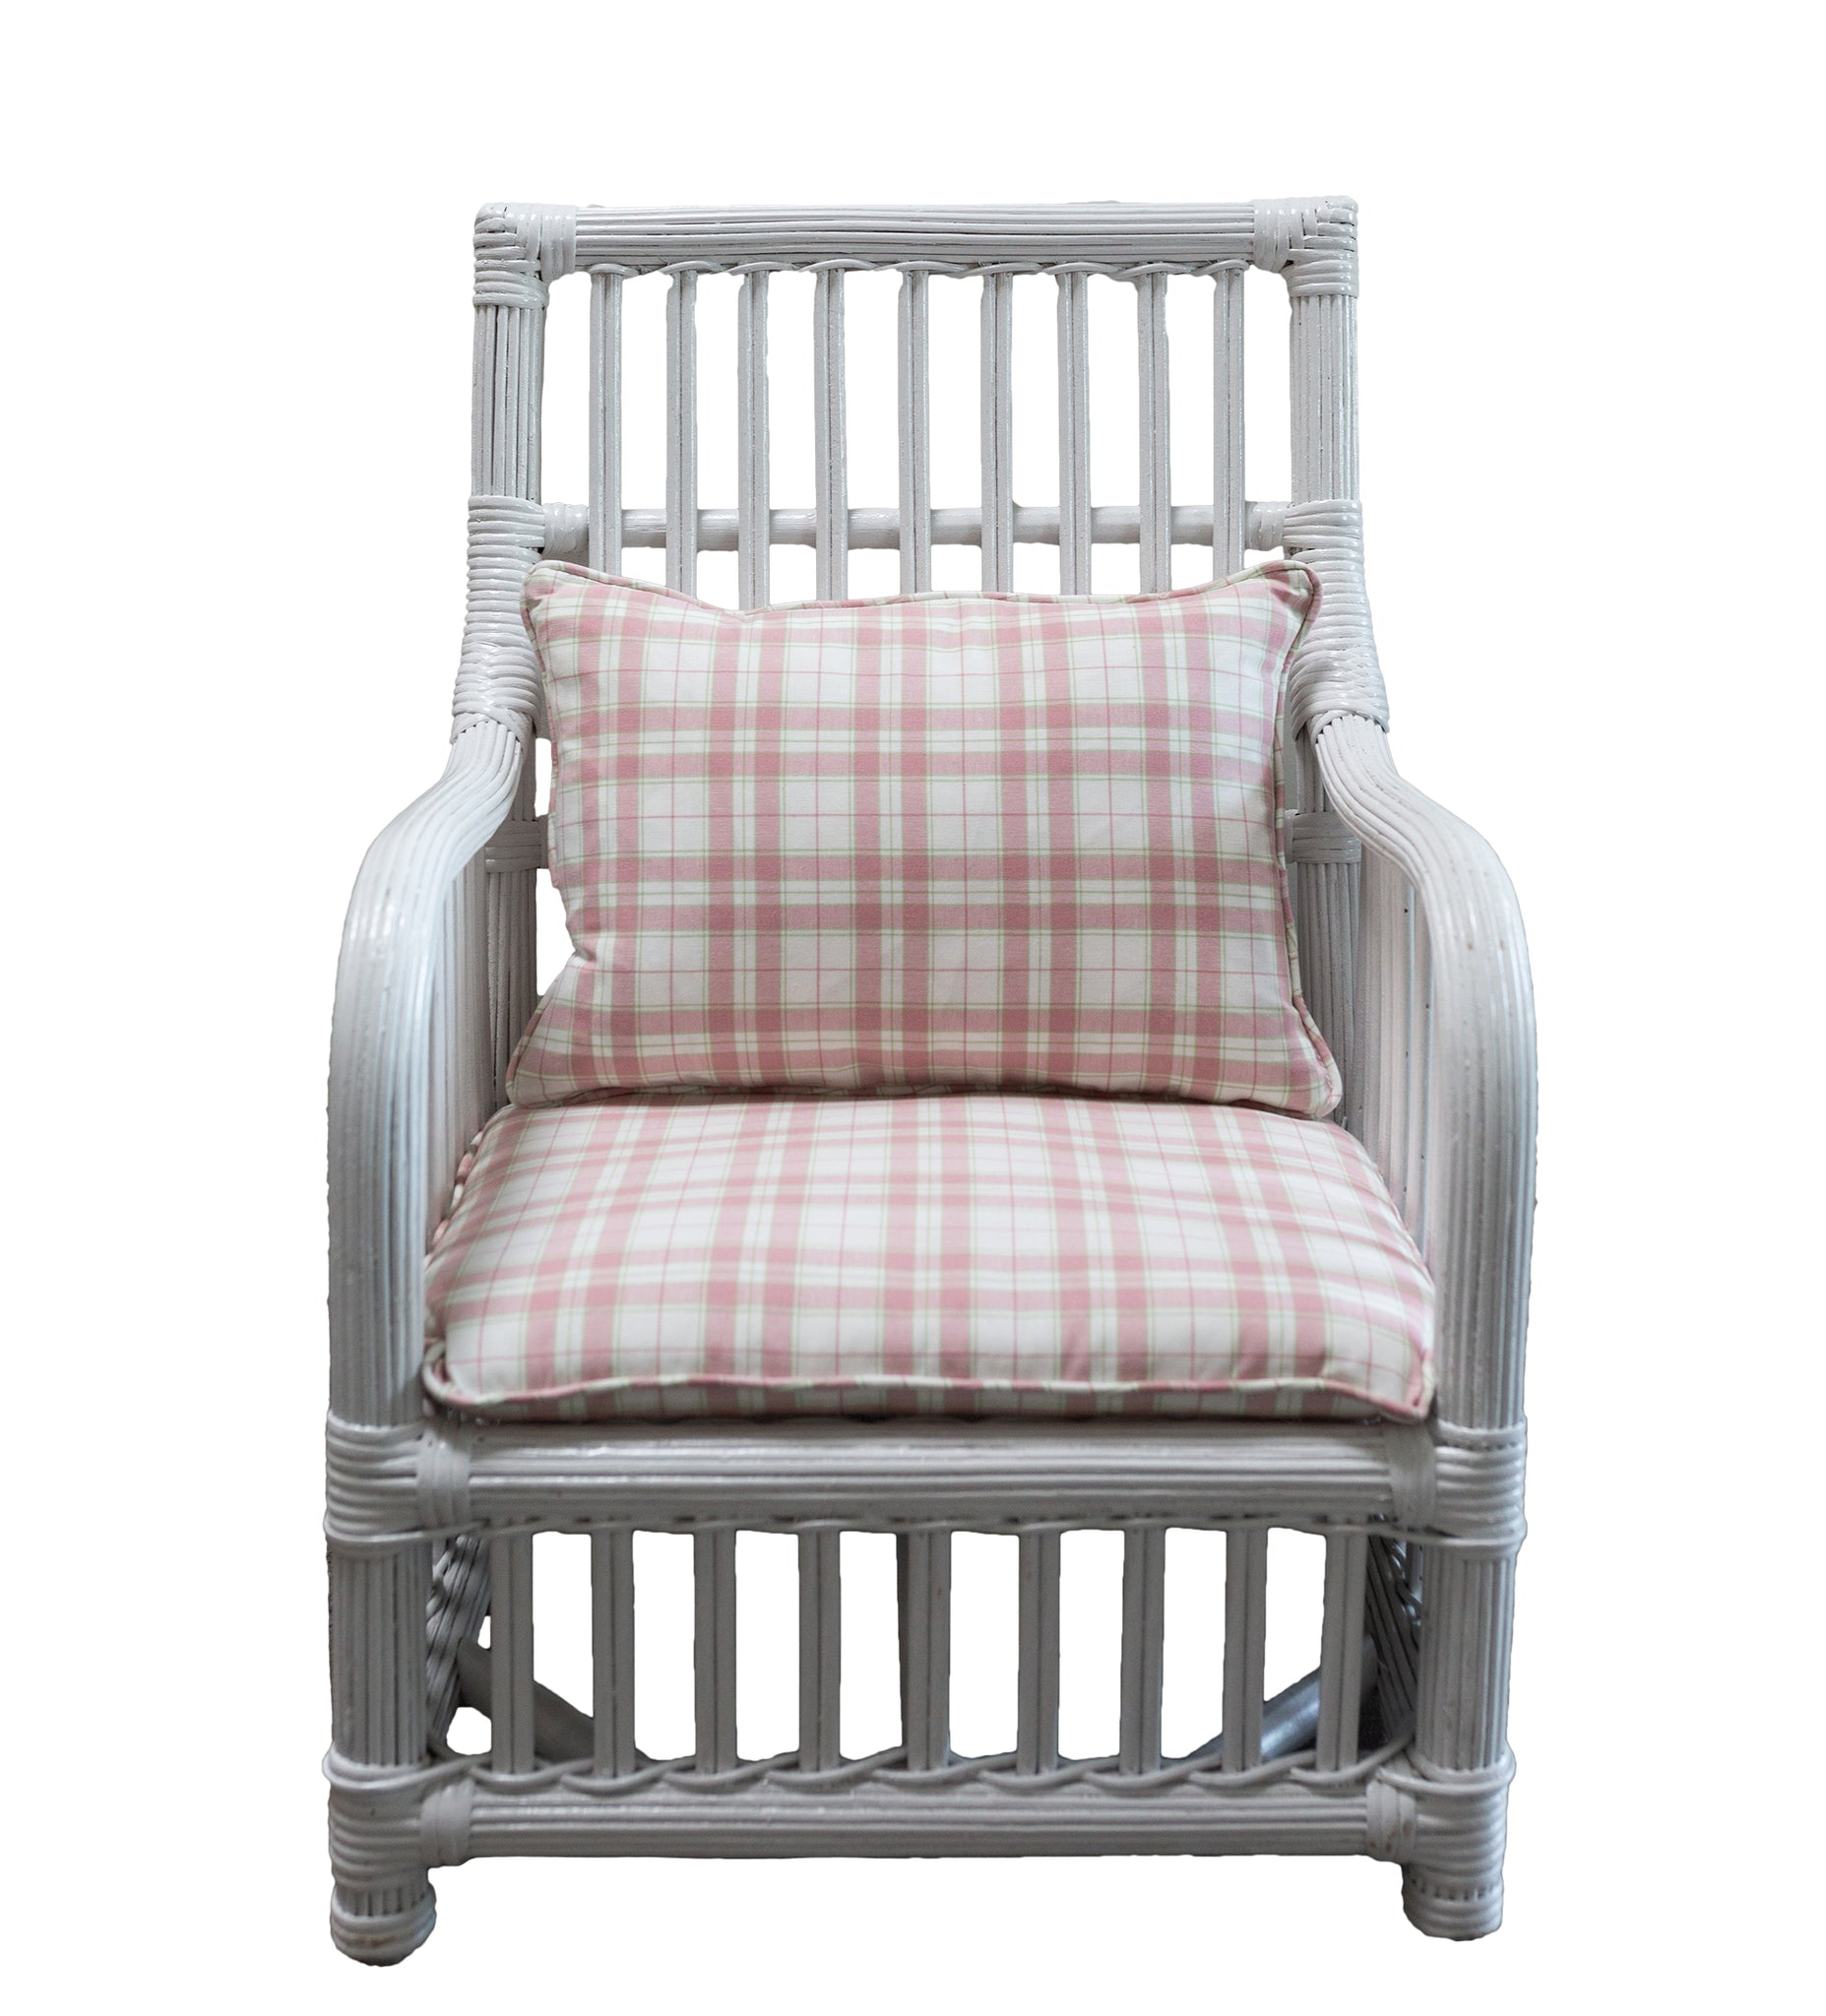 Child's Lounge Chair - Amy Berry Home